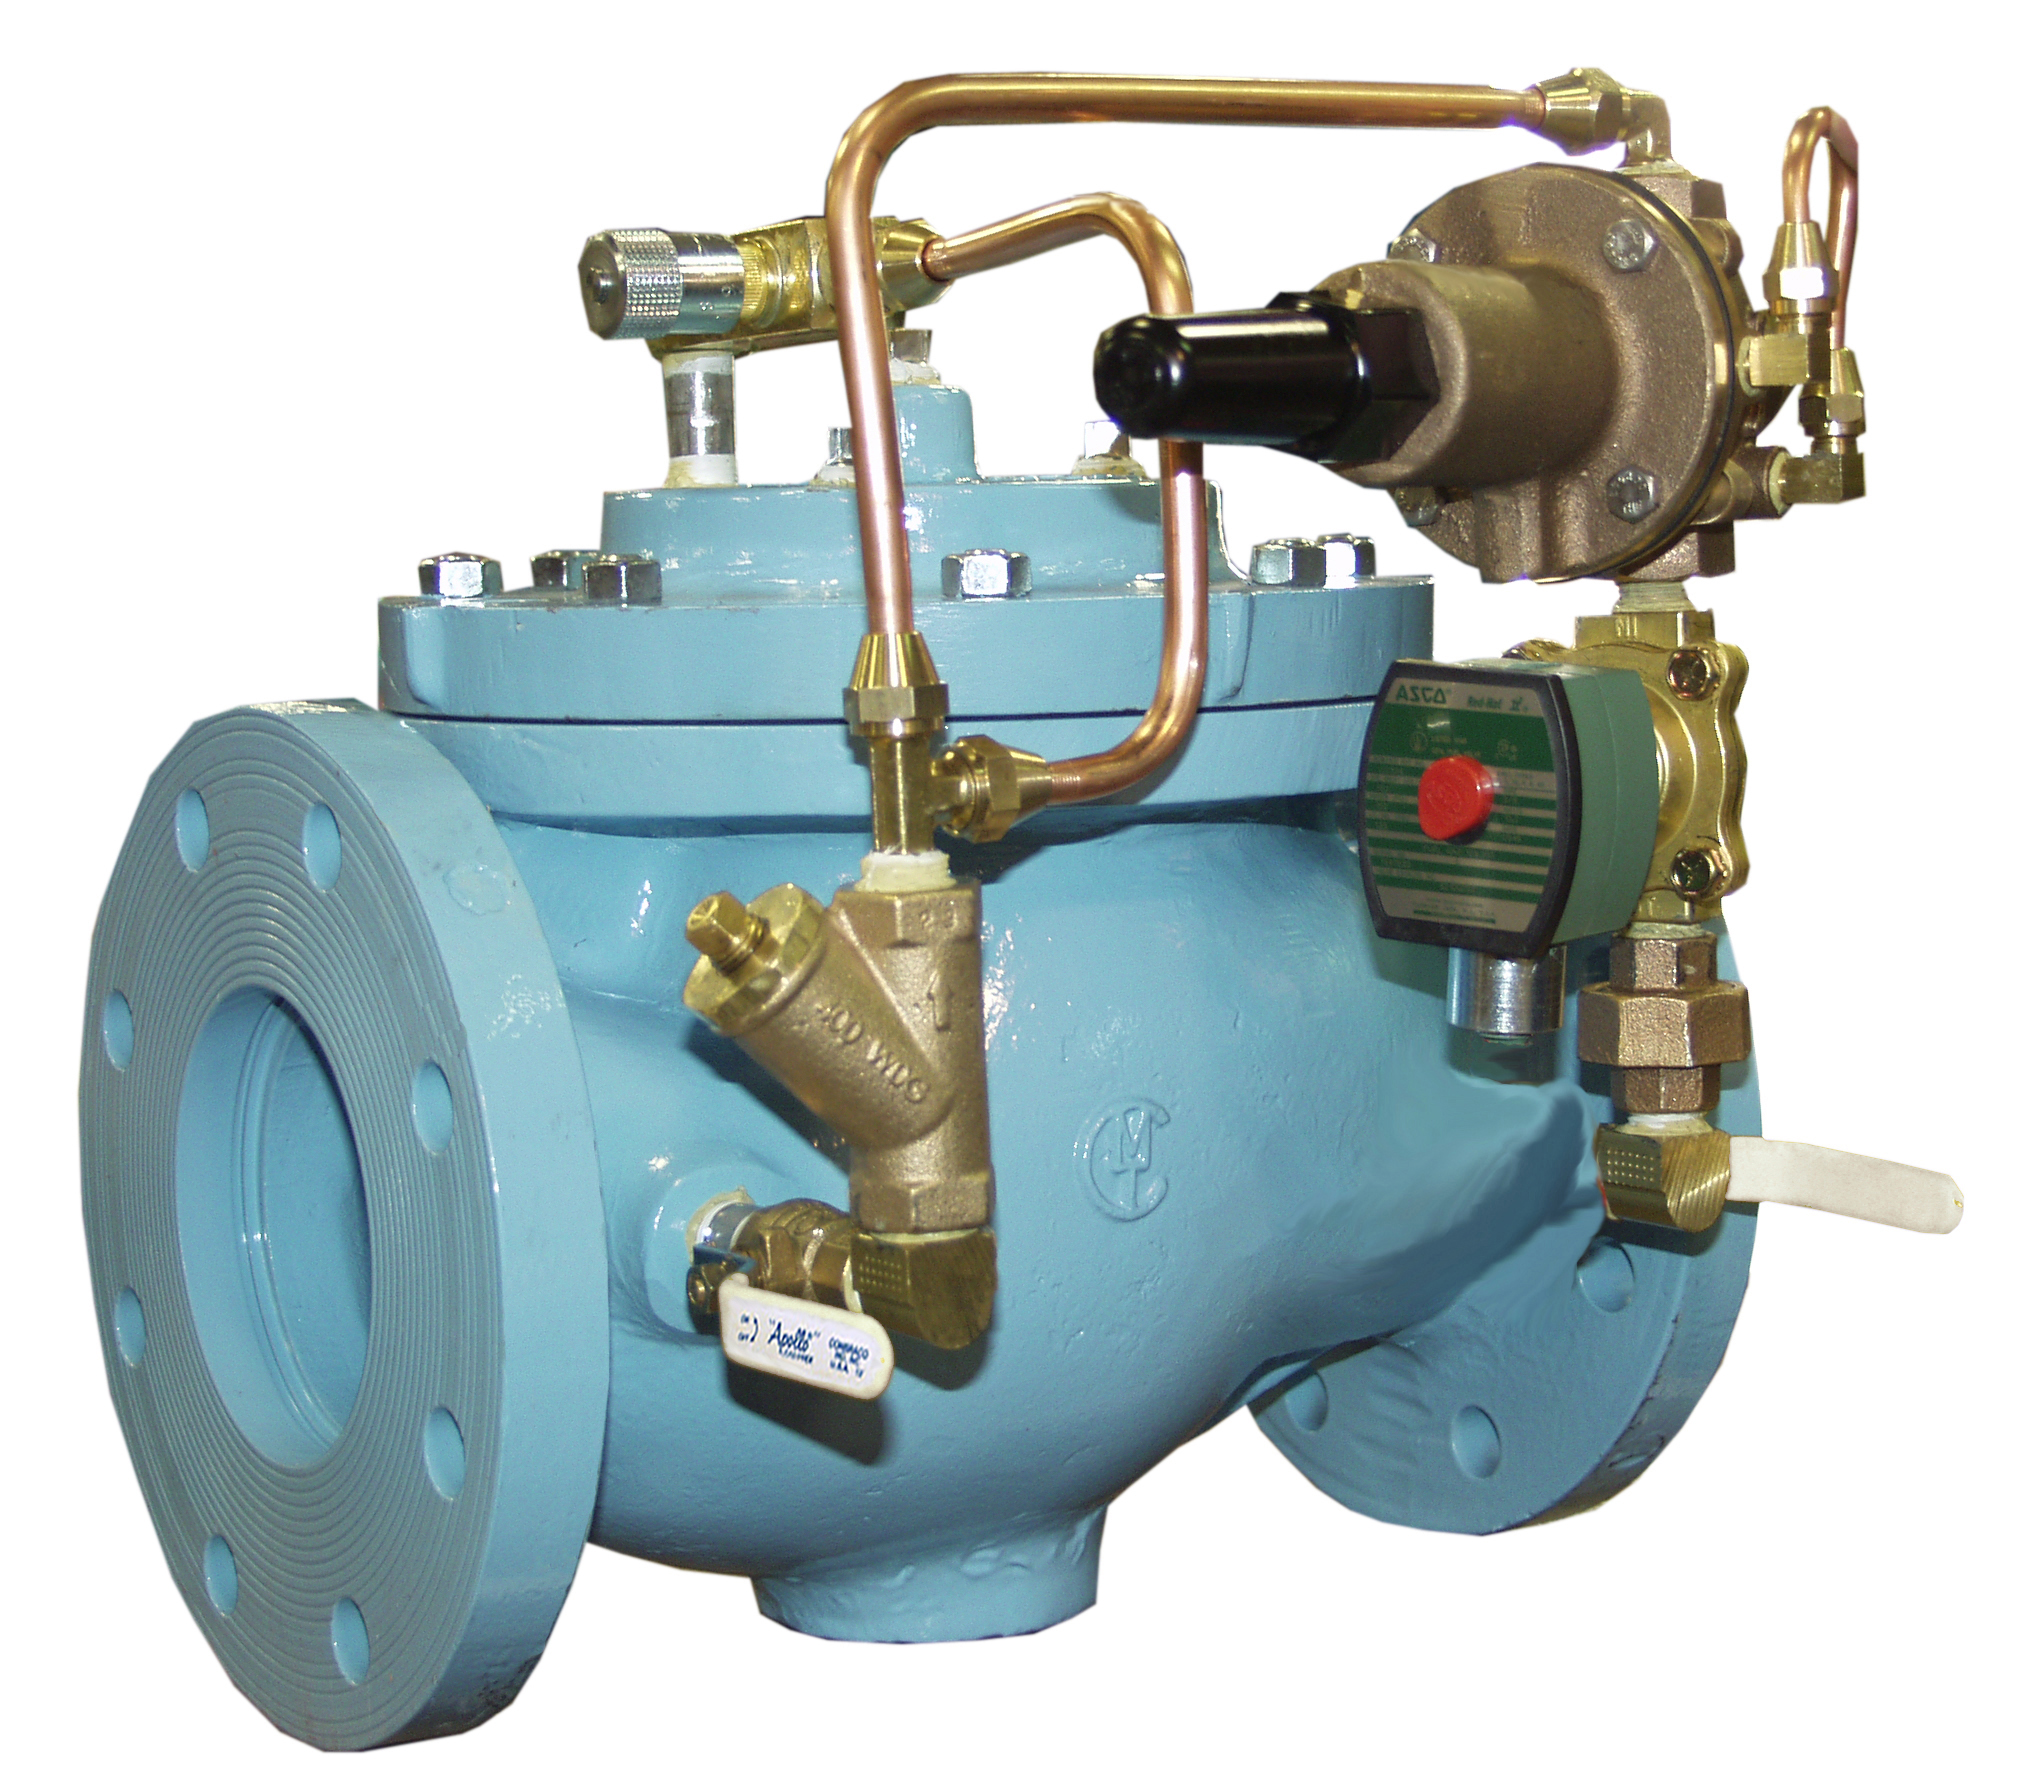 VAN KHAI THÁC MỎ - OCV - MỸ -Model 127-80 Pressure Reducing and Solenoid Shut-Off Valve